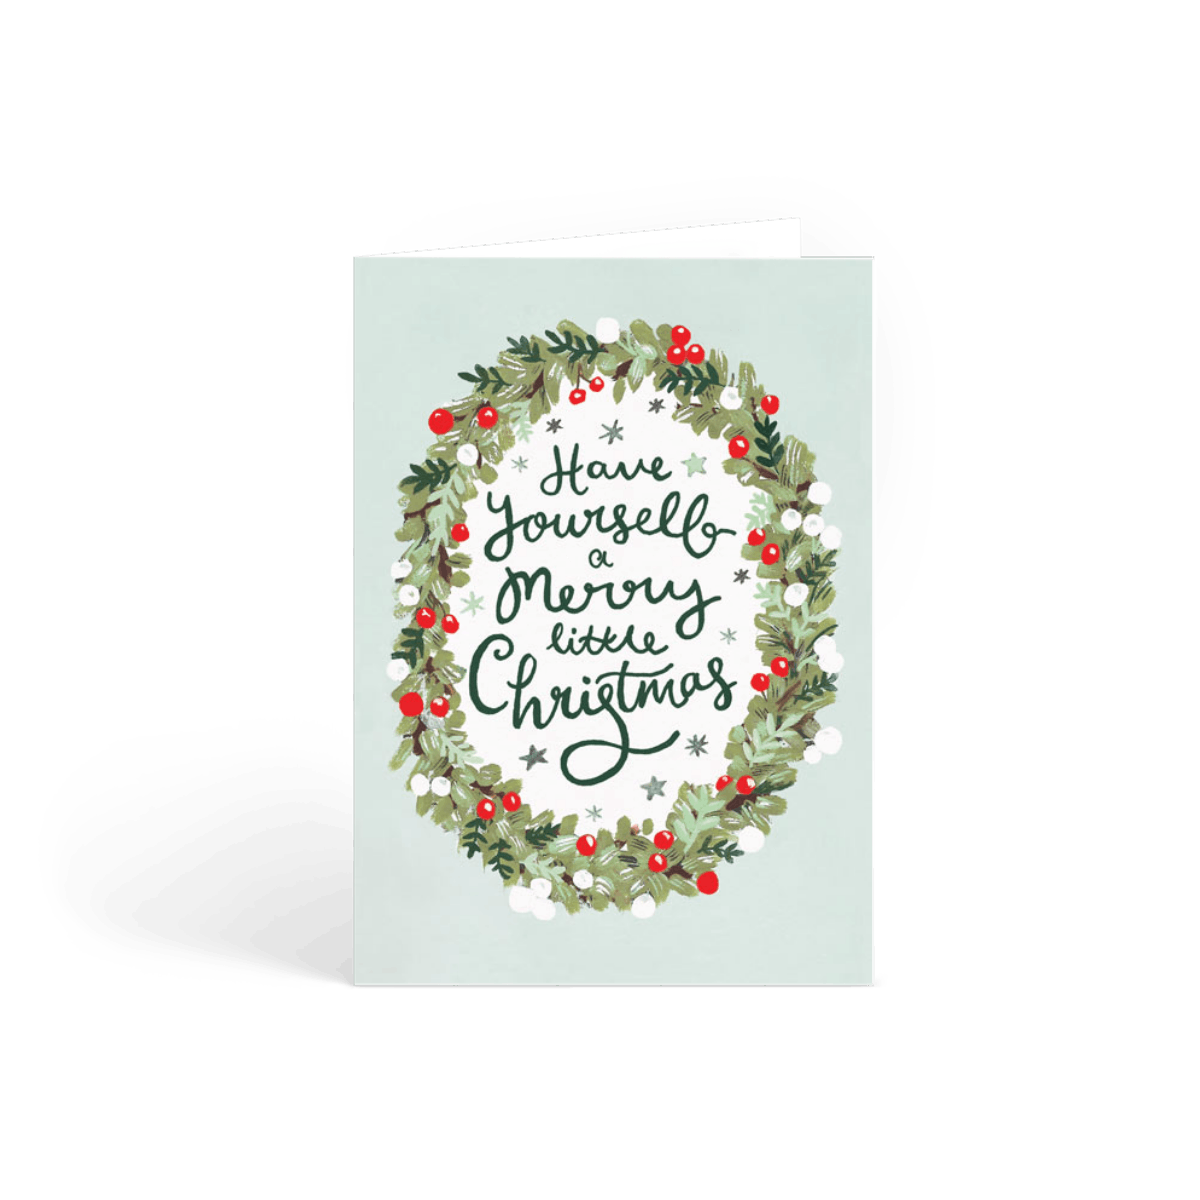 Https%3a%2f%2fwww.papier.com%2fproduct image%2f9949%2f2%2fmerry little christmas 2531 avant 1470317523.png?ixlib=rb 1.1